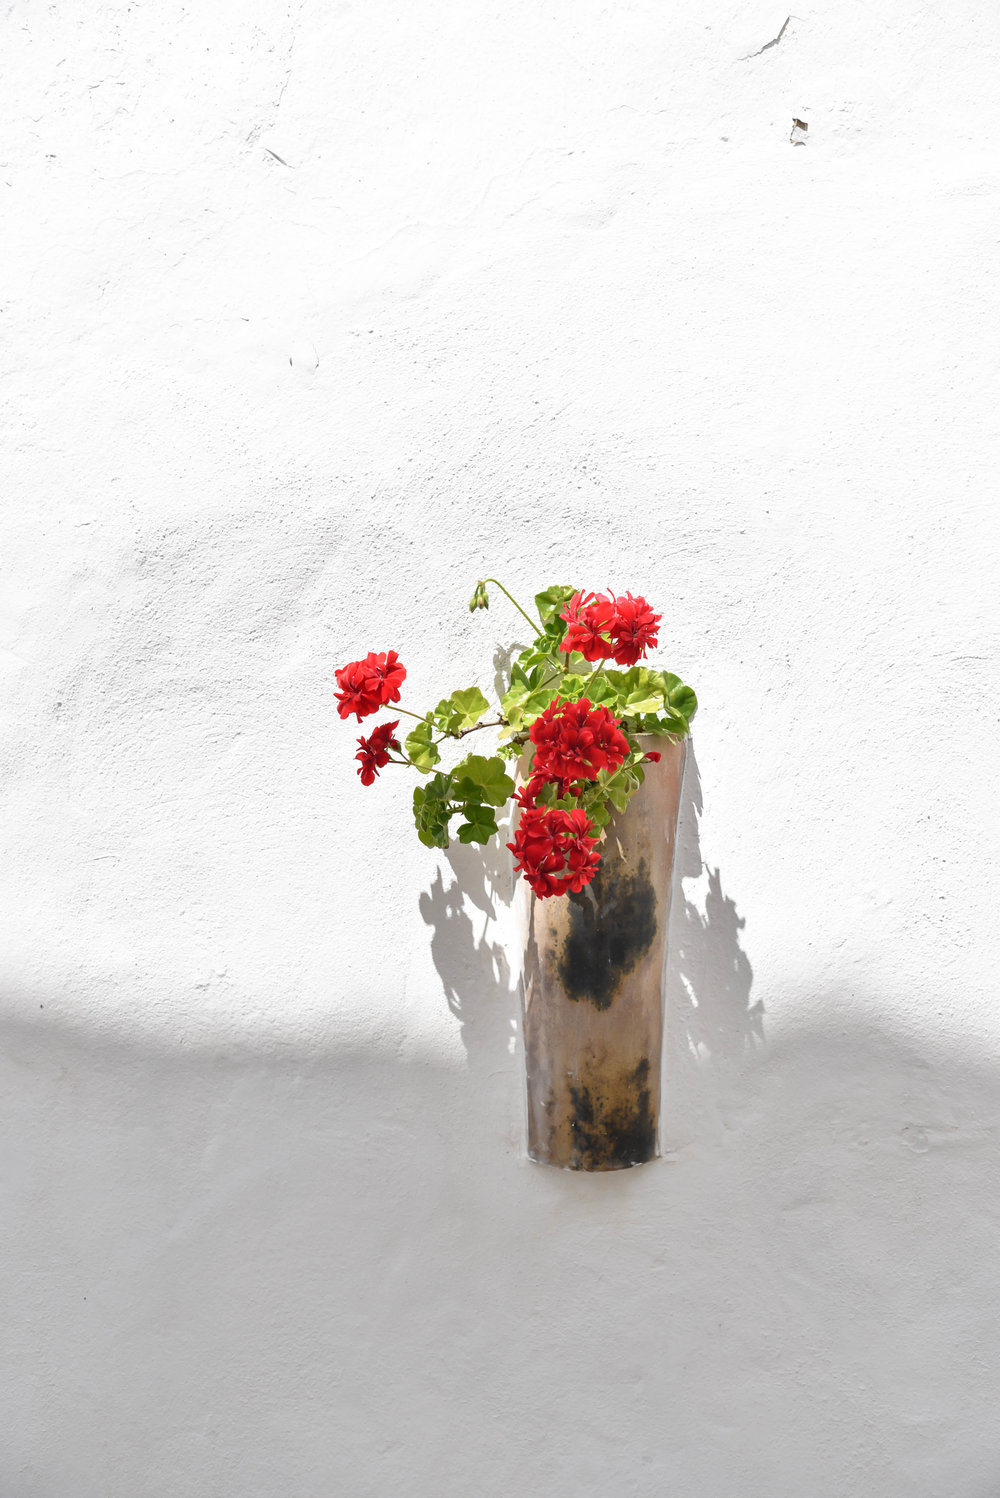 ROSE & IVY Journal Escape Vejer de la Frontera, Spain Viejo Blanco